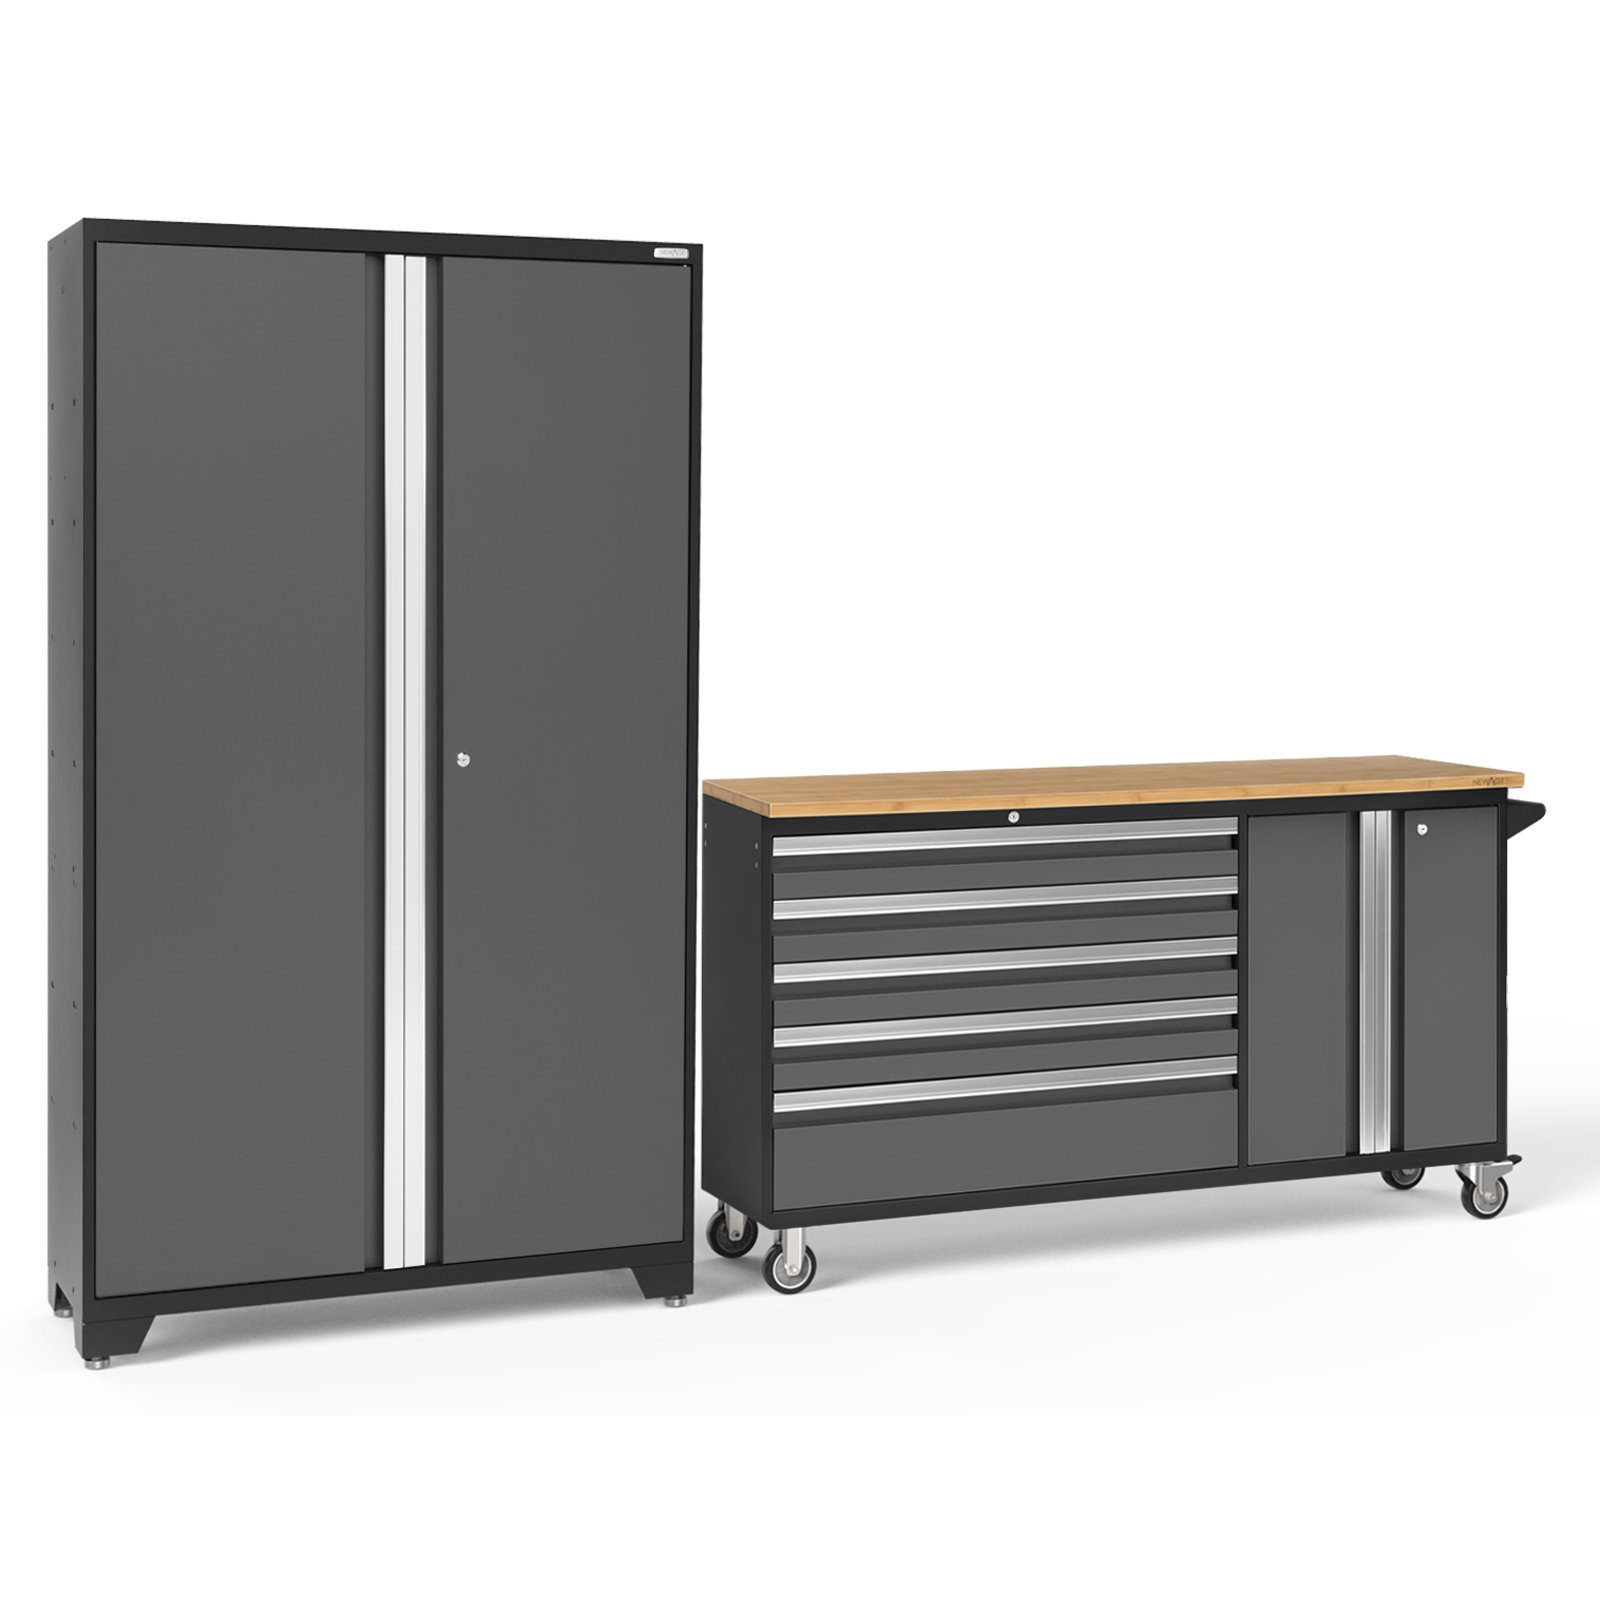 NewAge Products Bold 3.0 2 Piece Garage Cabinet System